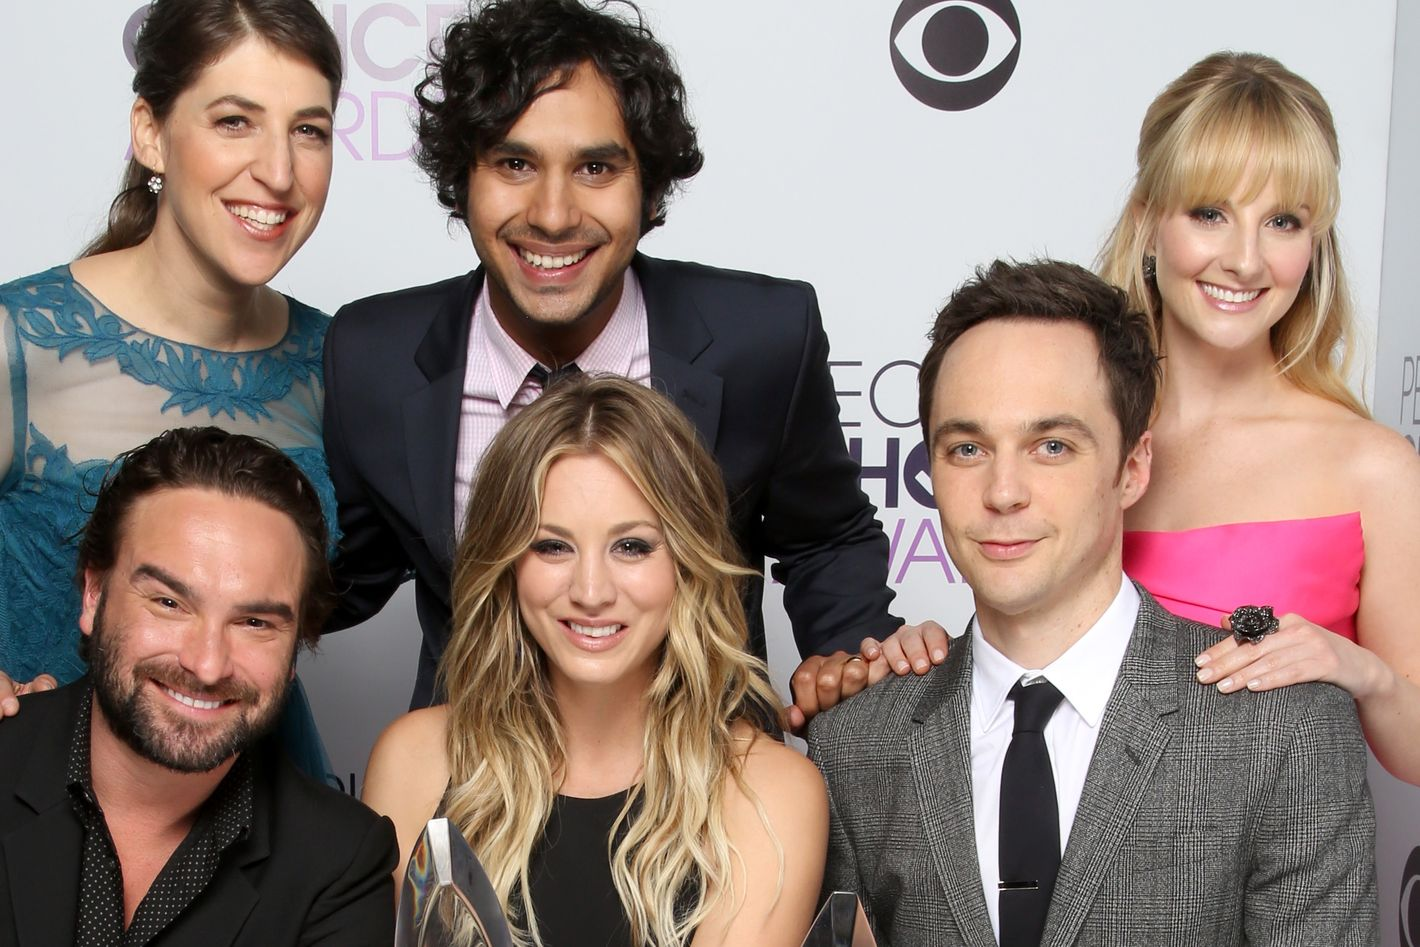 we estimated 'the big bang theory' stars' total earnings